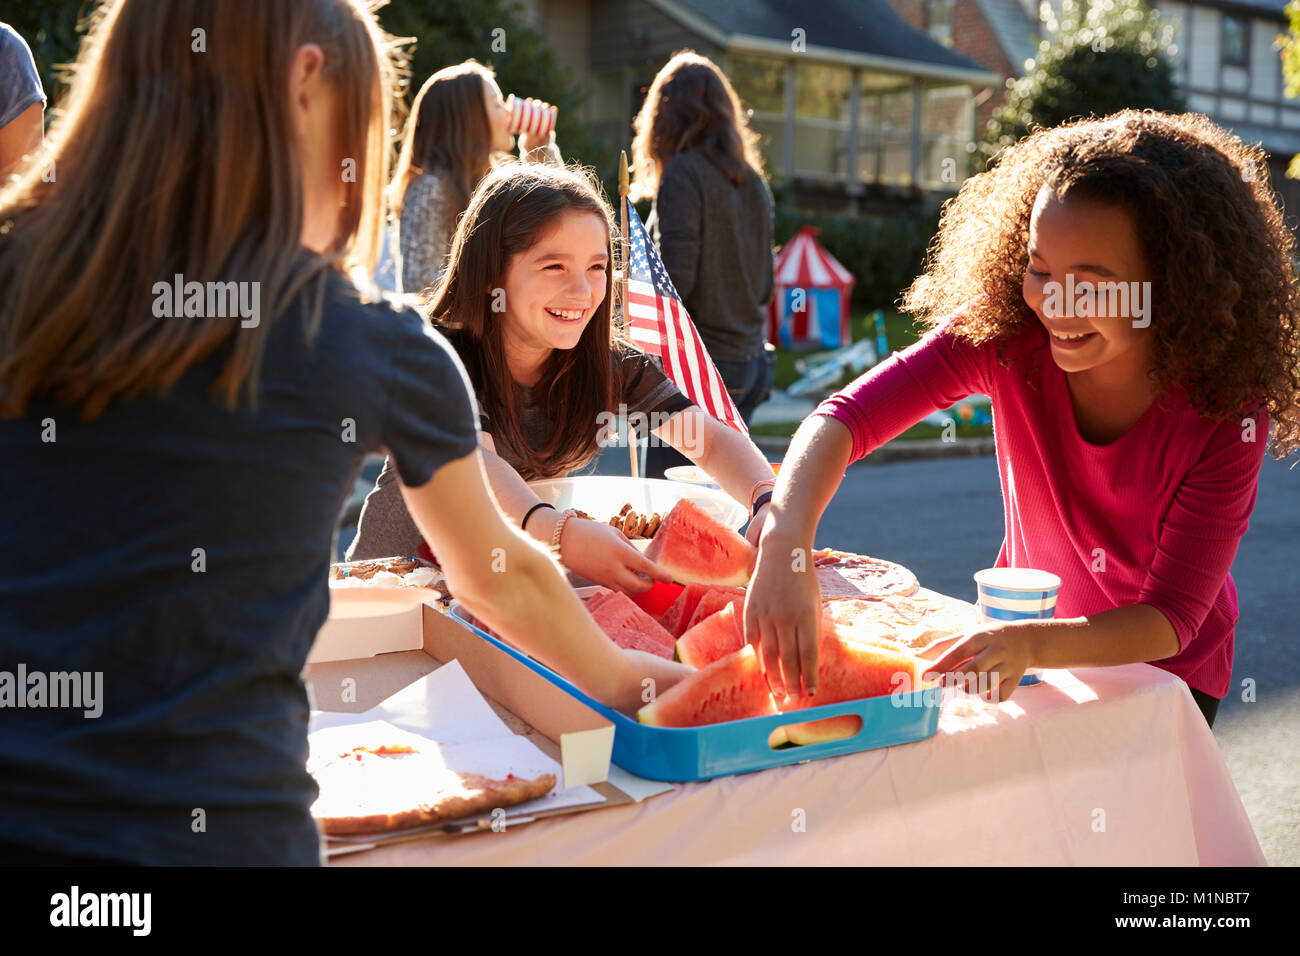 Girls serving themselves watermelon at a block party - Stock Image